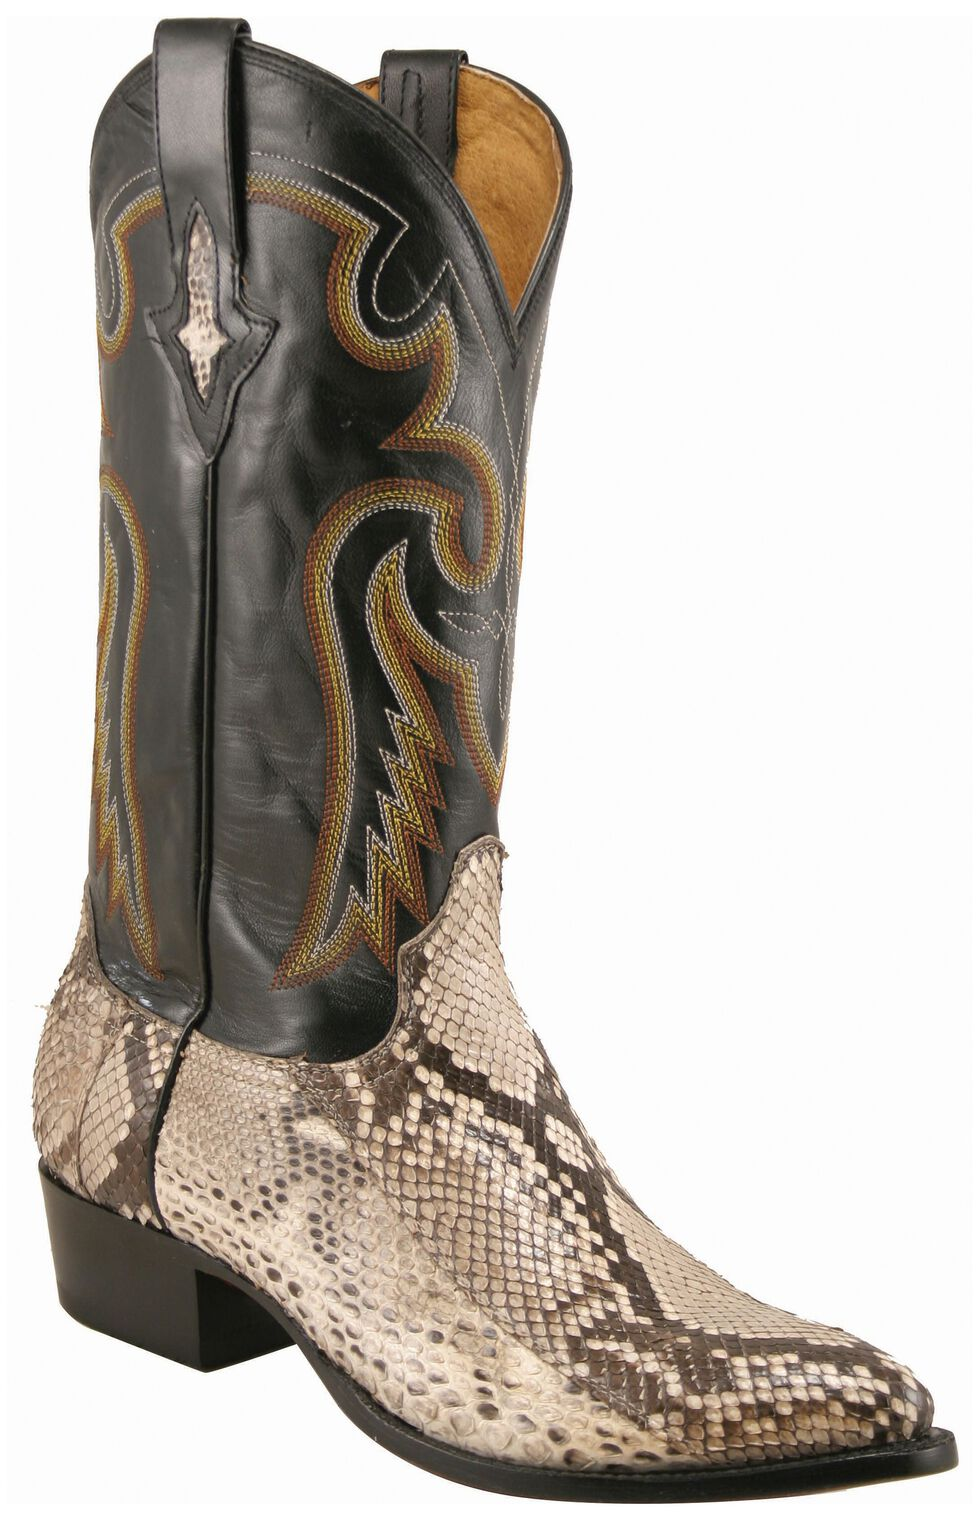 Lucchese Handmade 1883 Belly Cut Python Cowboy Boots, Natural, hi-res